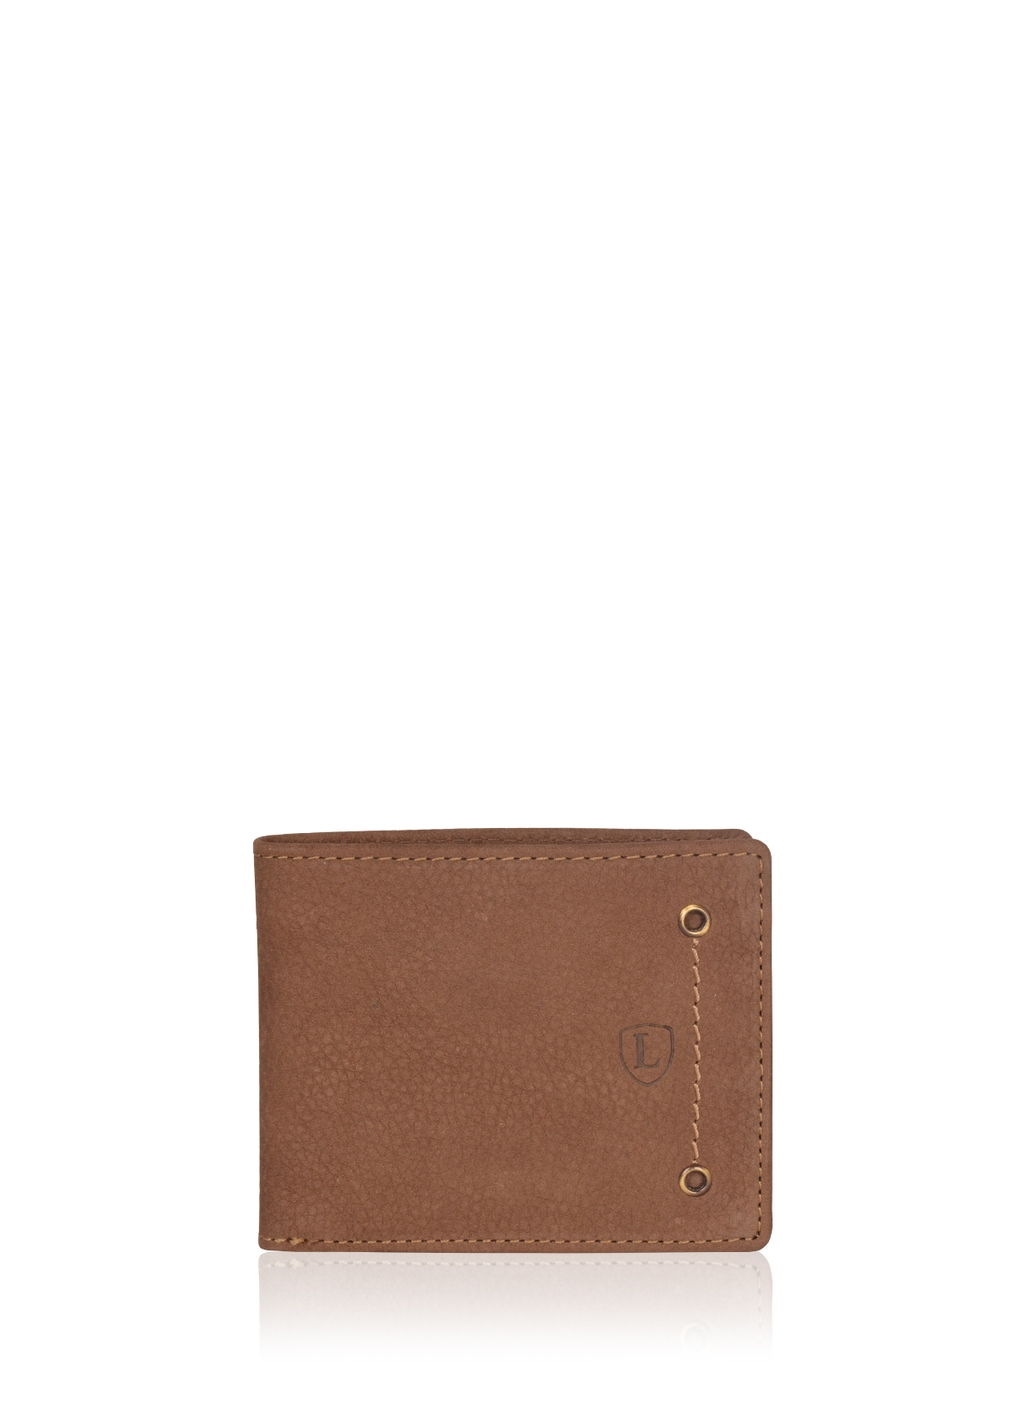 Edward Bi-Fold Leather Wallet in Coffee Brown